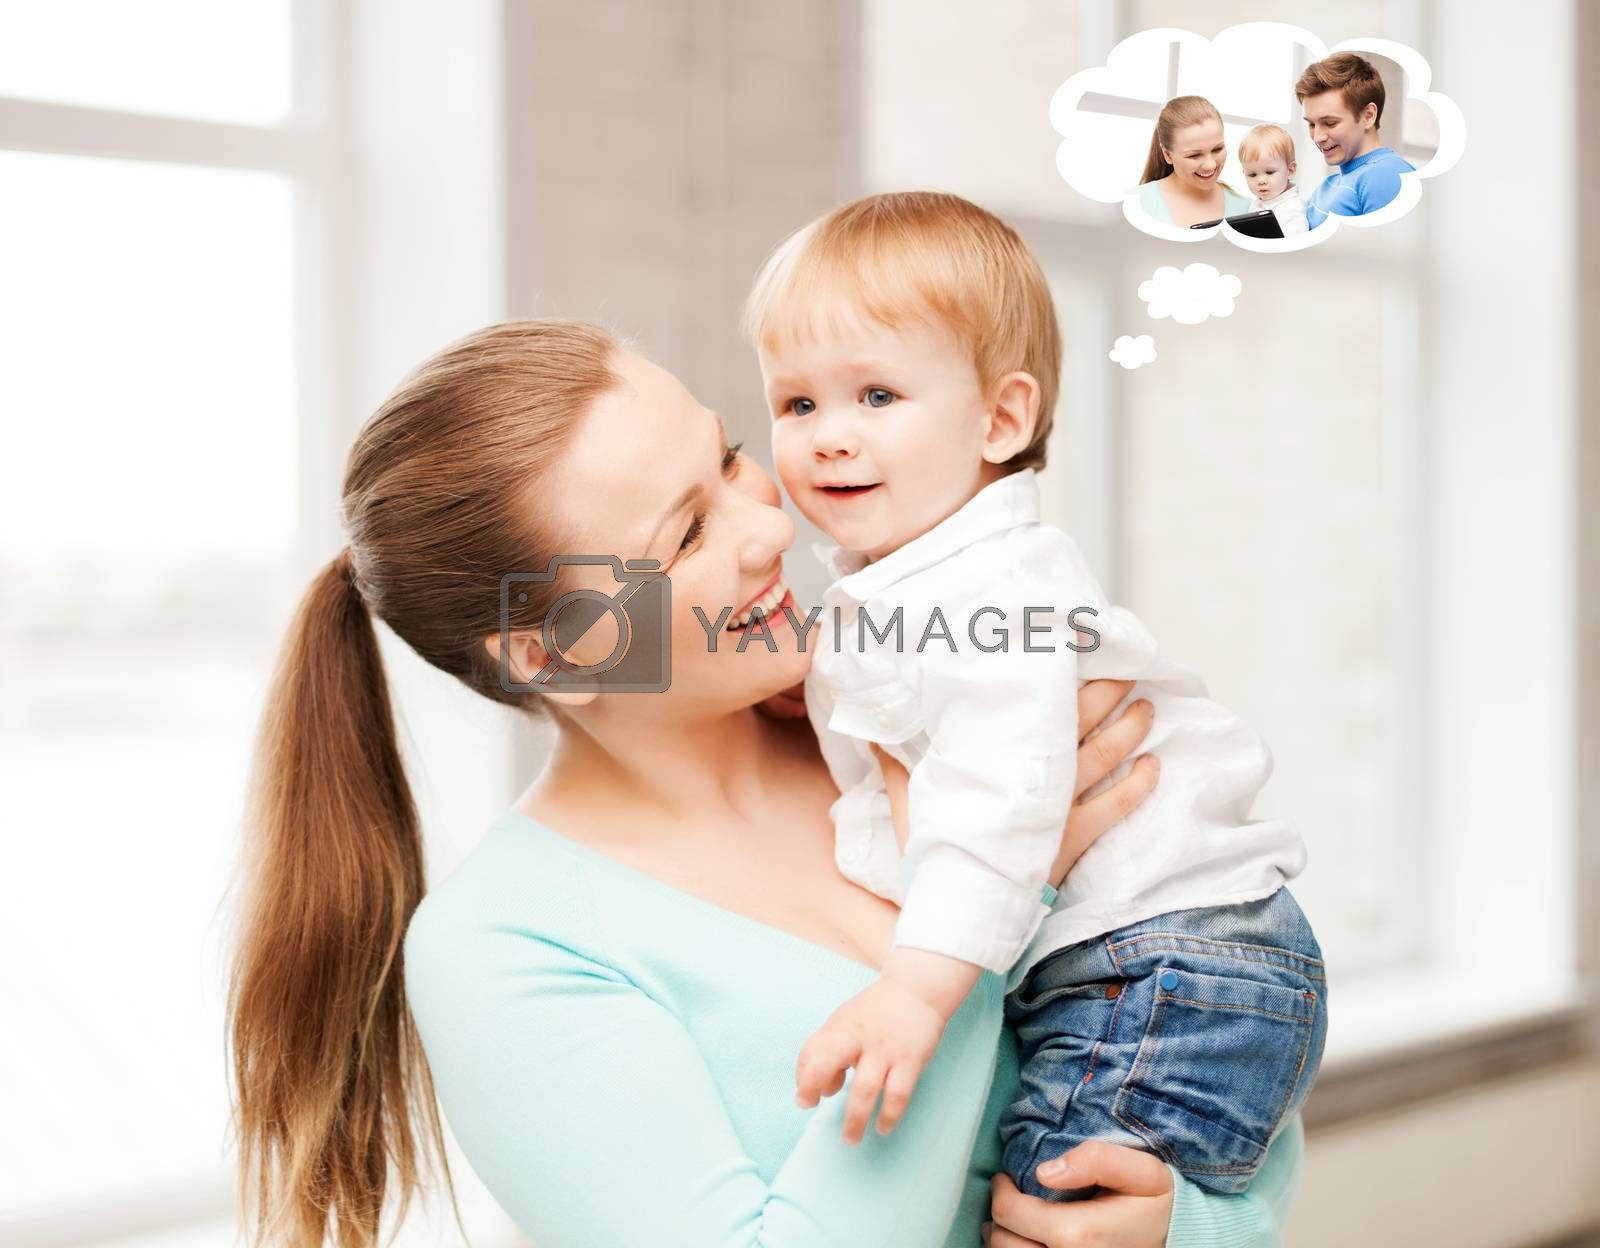 family, home and child care concept - mother with adorable baby thinking about father